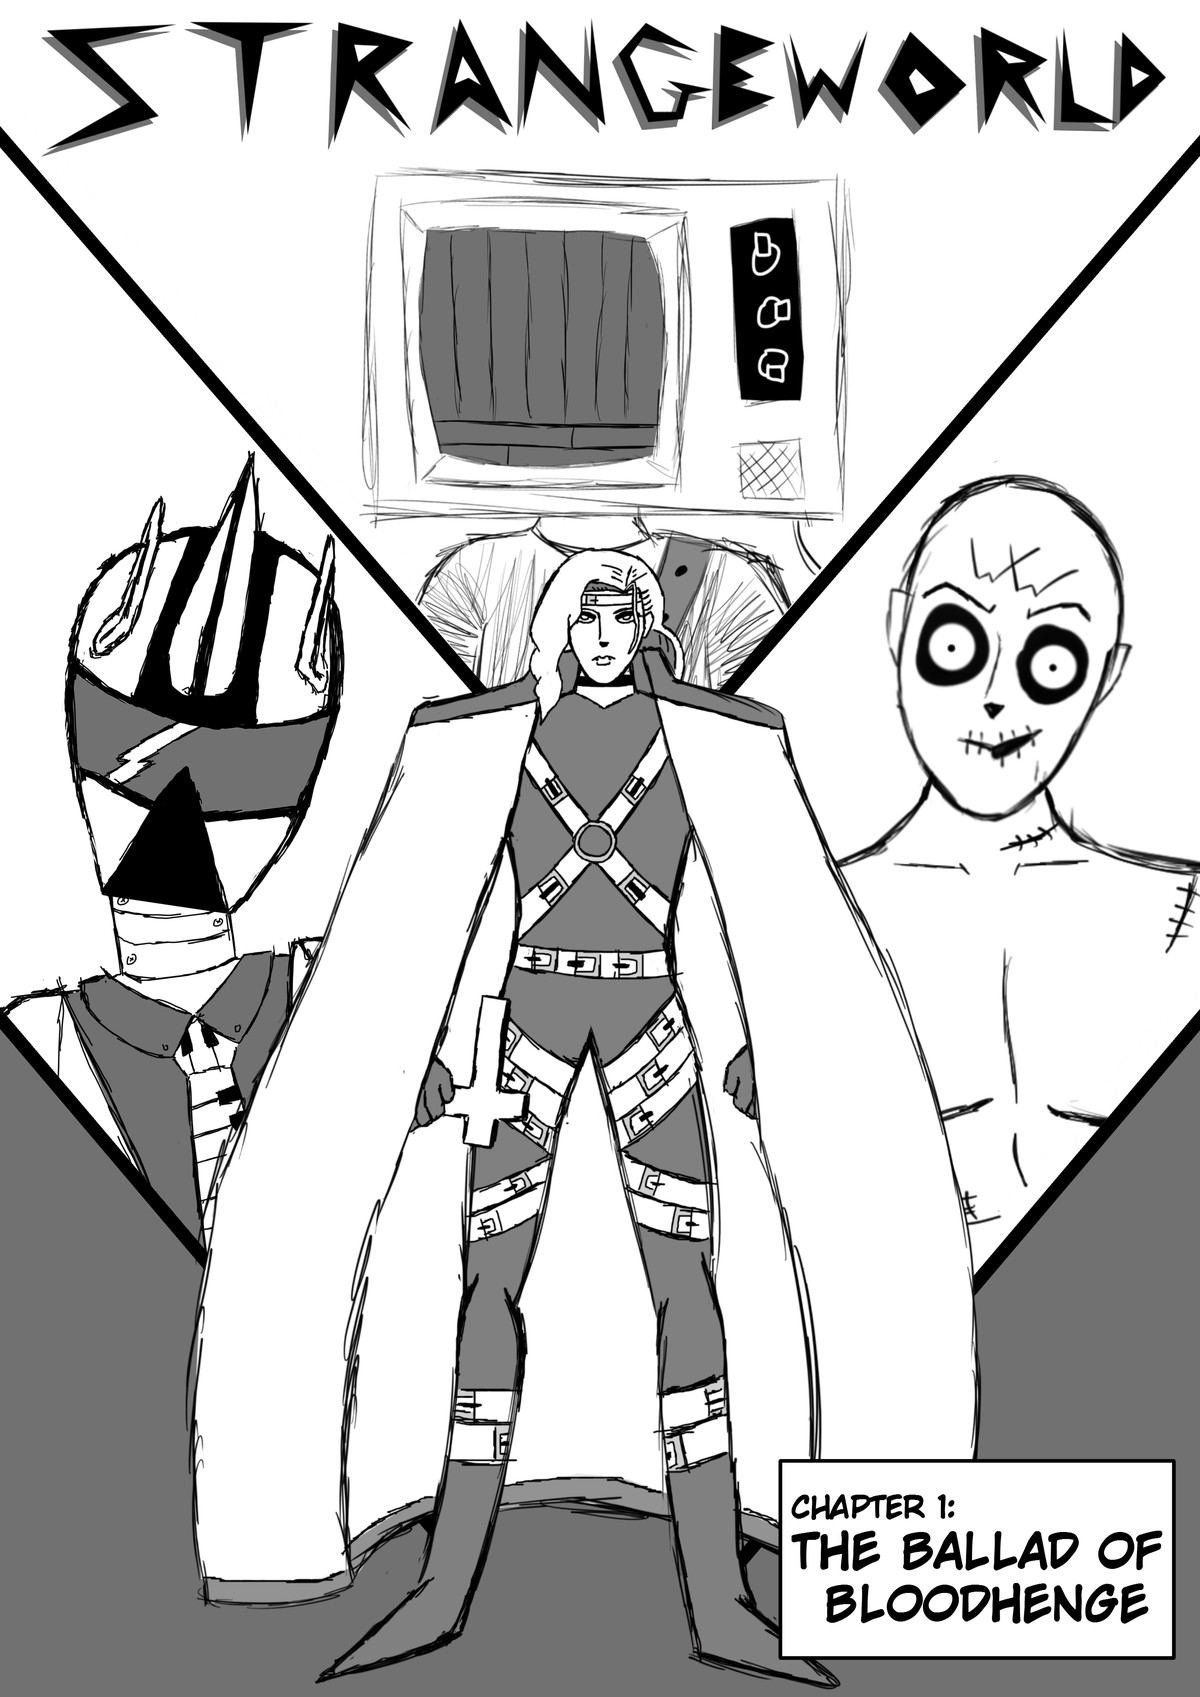 StrangeWorld Intro! Chapter 1: The Ballad of Bloodhenge. Hey everyone! My name's Tom, and this is my little comic, StrangeWorld! I started this project around a